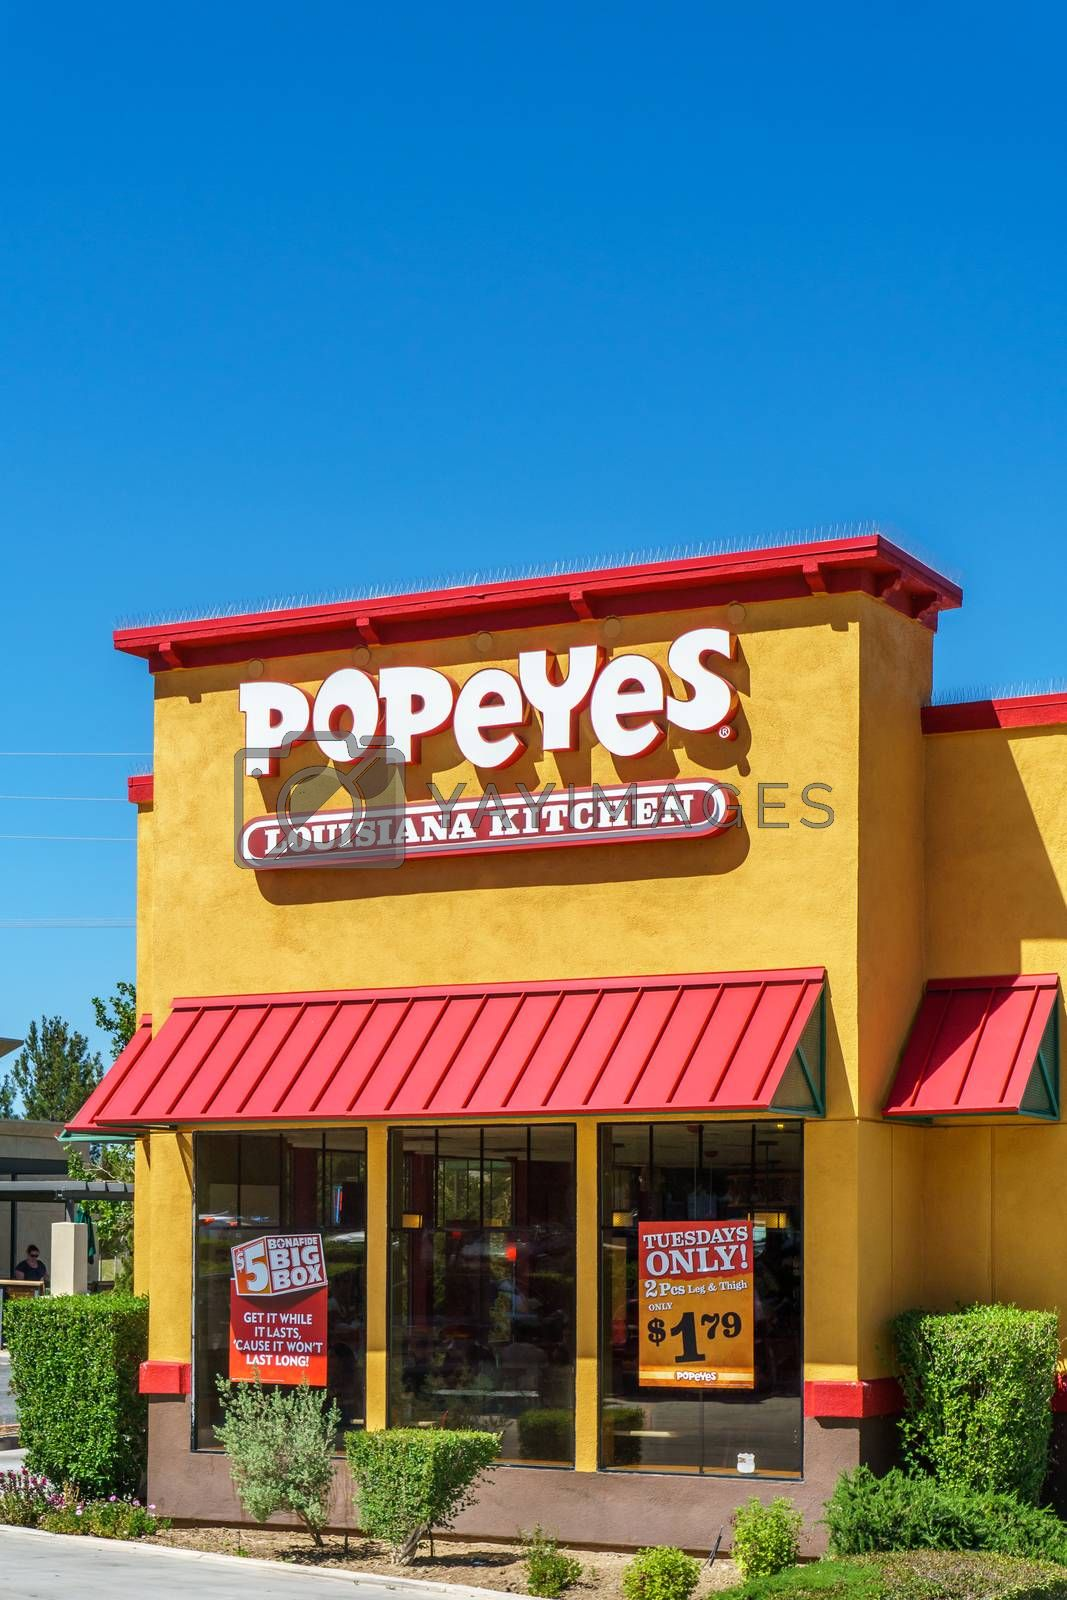 PALMDALE, CA/USA - APRIL 23, 2016: Popeyes Louisiana Kitchen exterior. Popeyes Louisiana Kitchen is an American chain of fried chicken fast food restaurants.